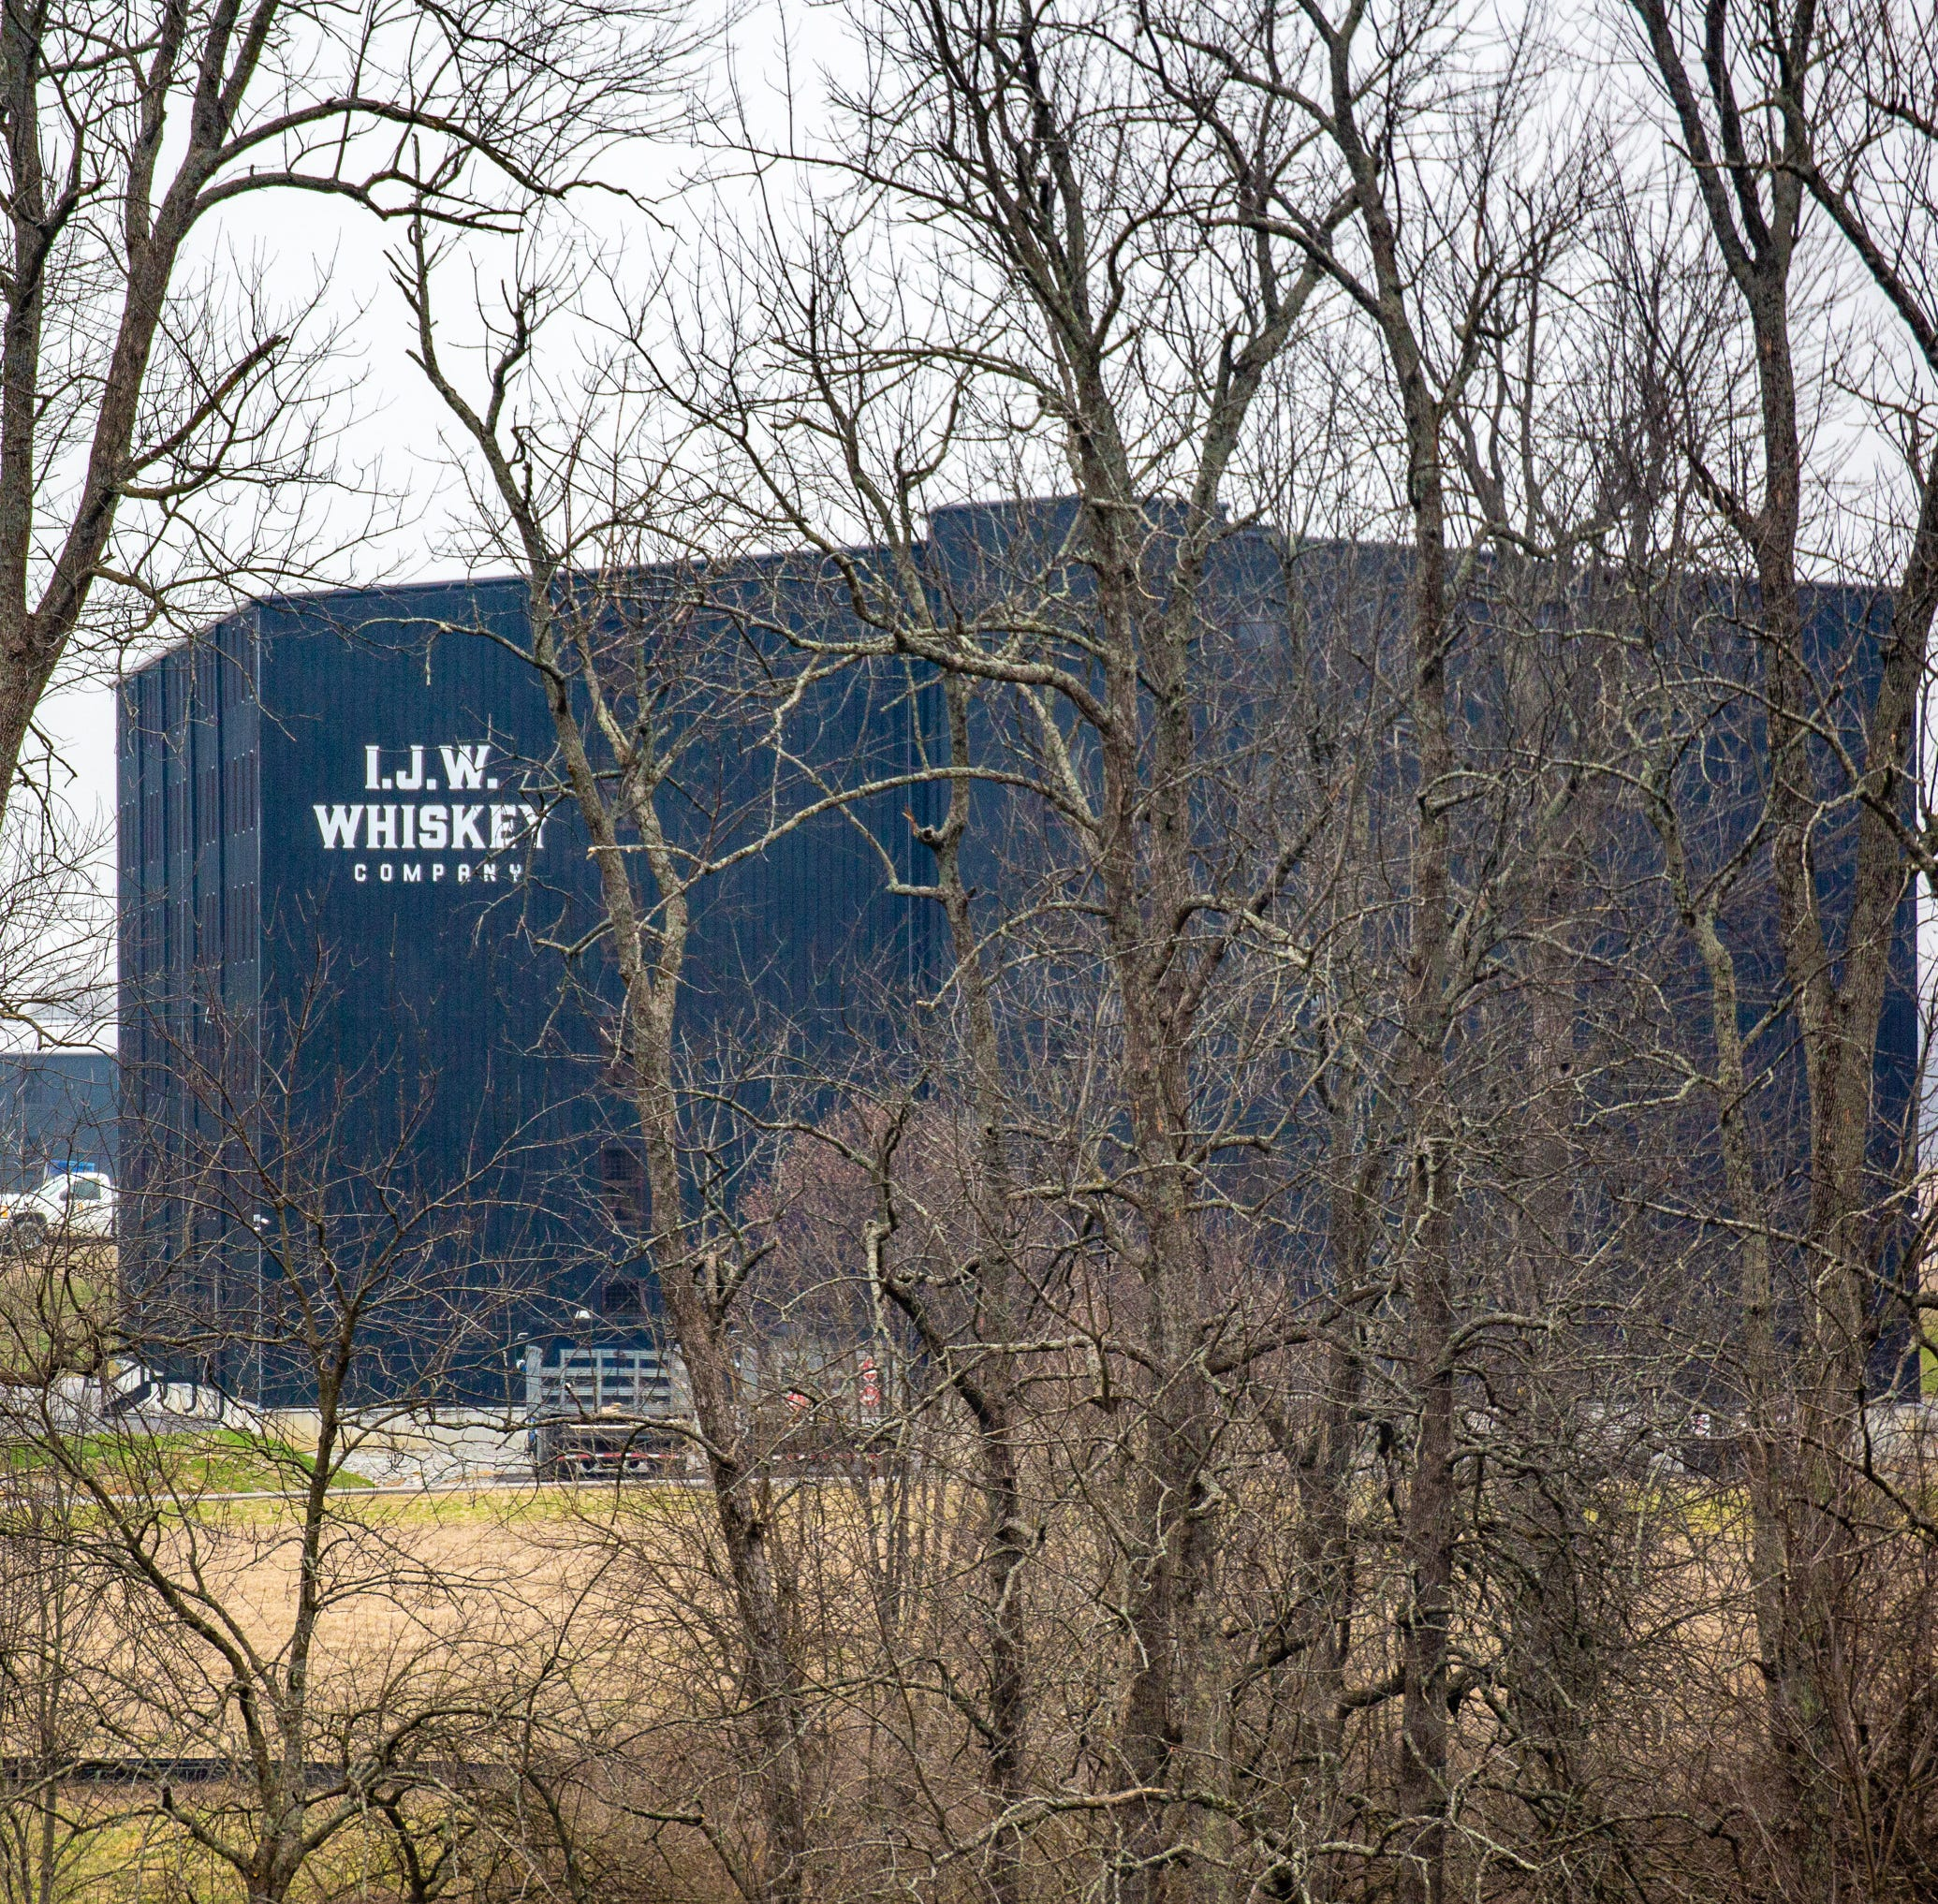 Mystery surrounds University of Michigan's possible Kentucky bourbon investment